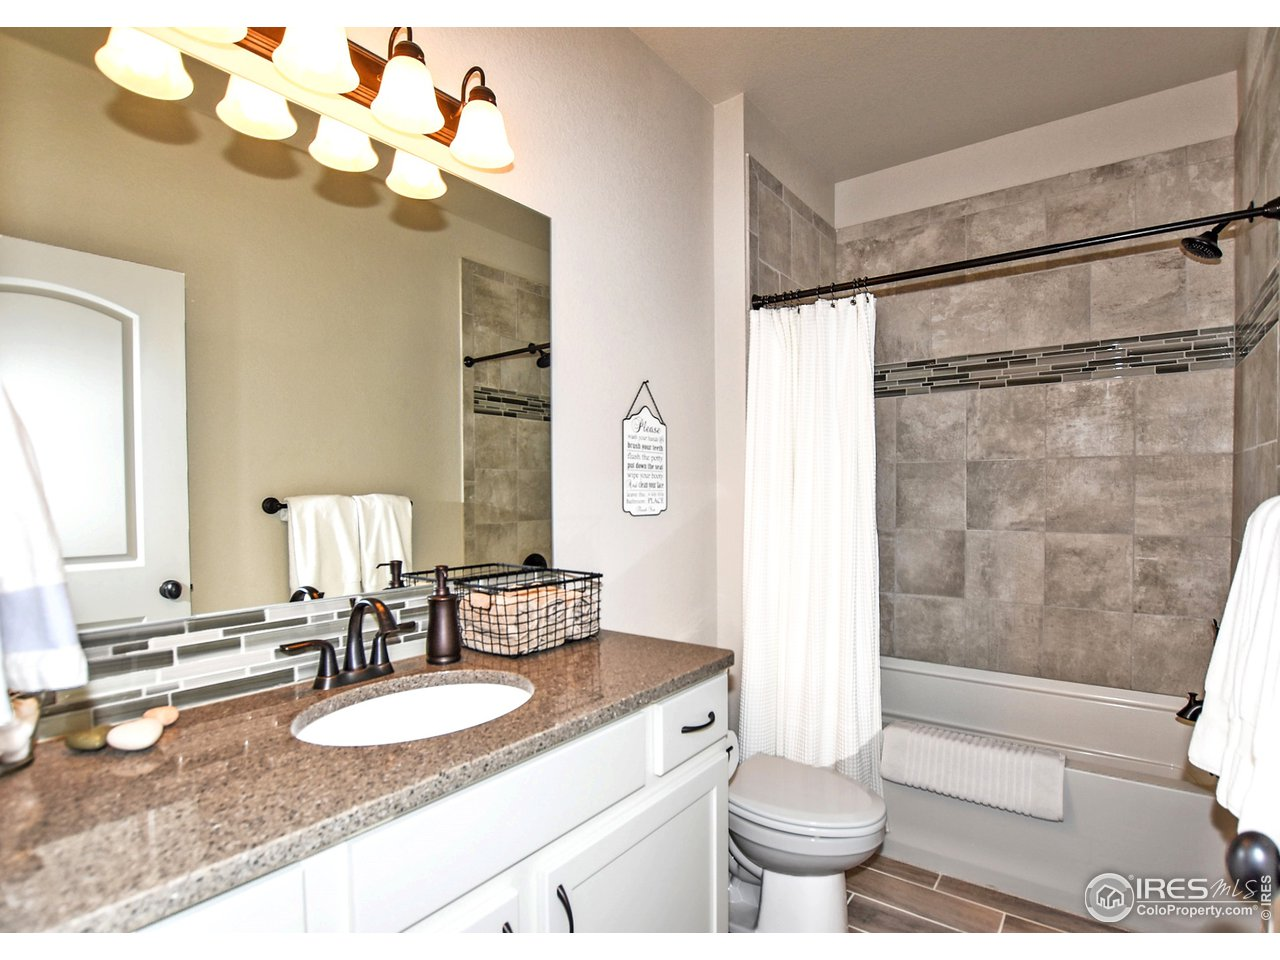 Shared upstairs full bathroom has upgraded quartz counters